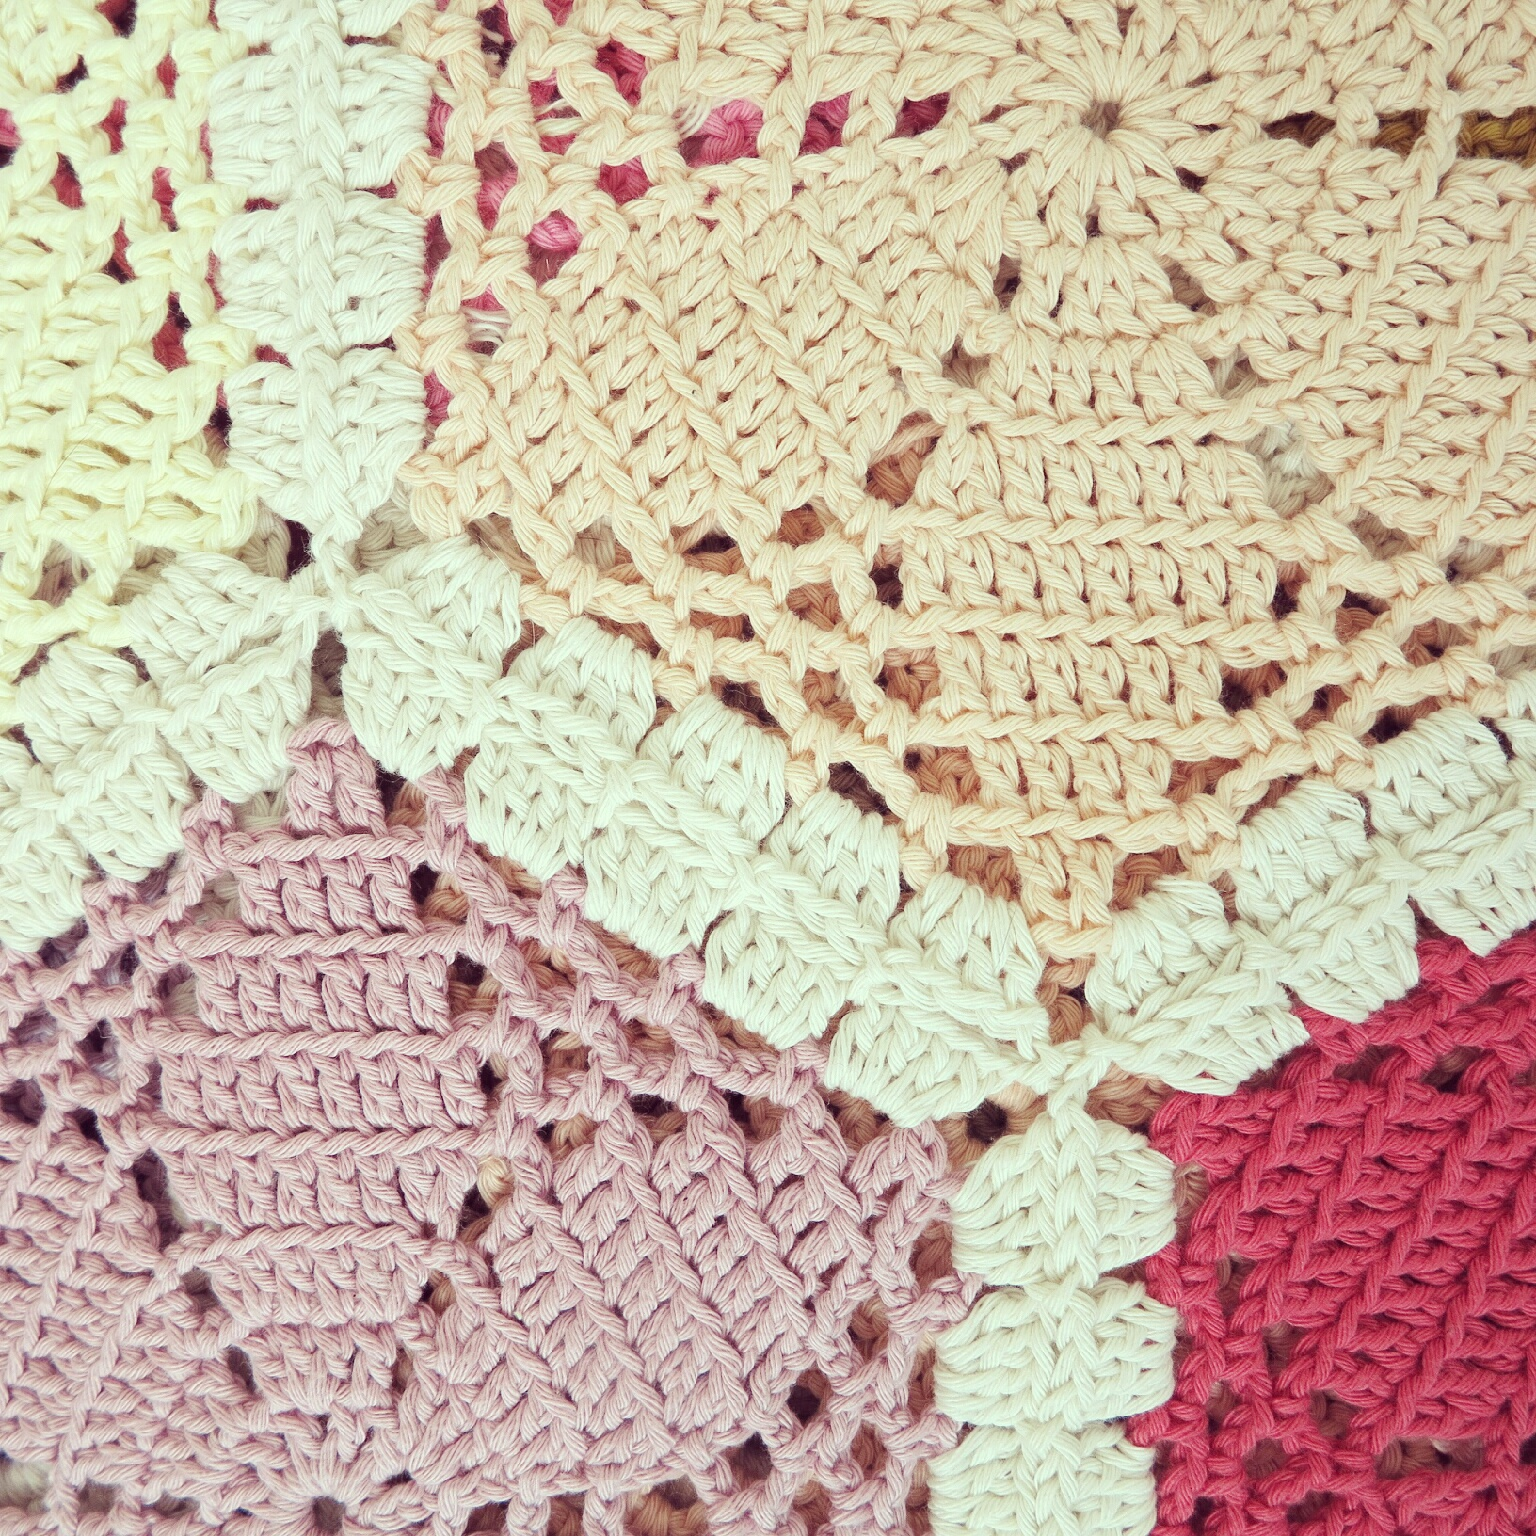 Crocheting Hexagons : ByHaafner, crochet, work in progress, throw, blanket, hexagon, pastel